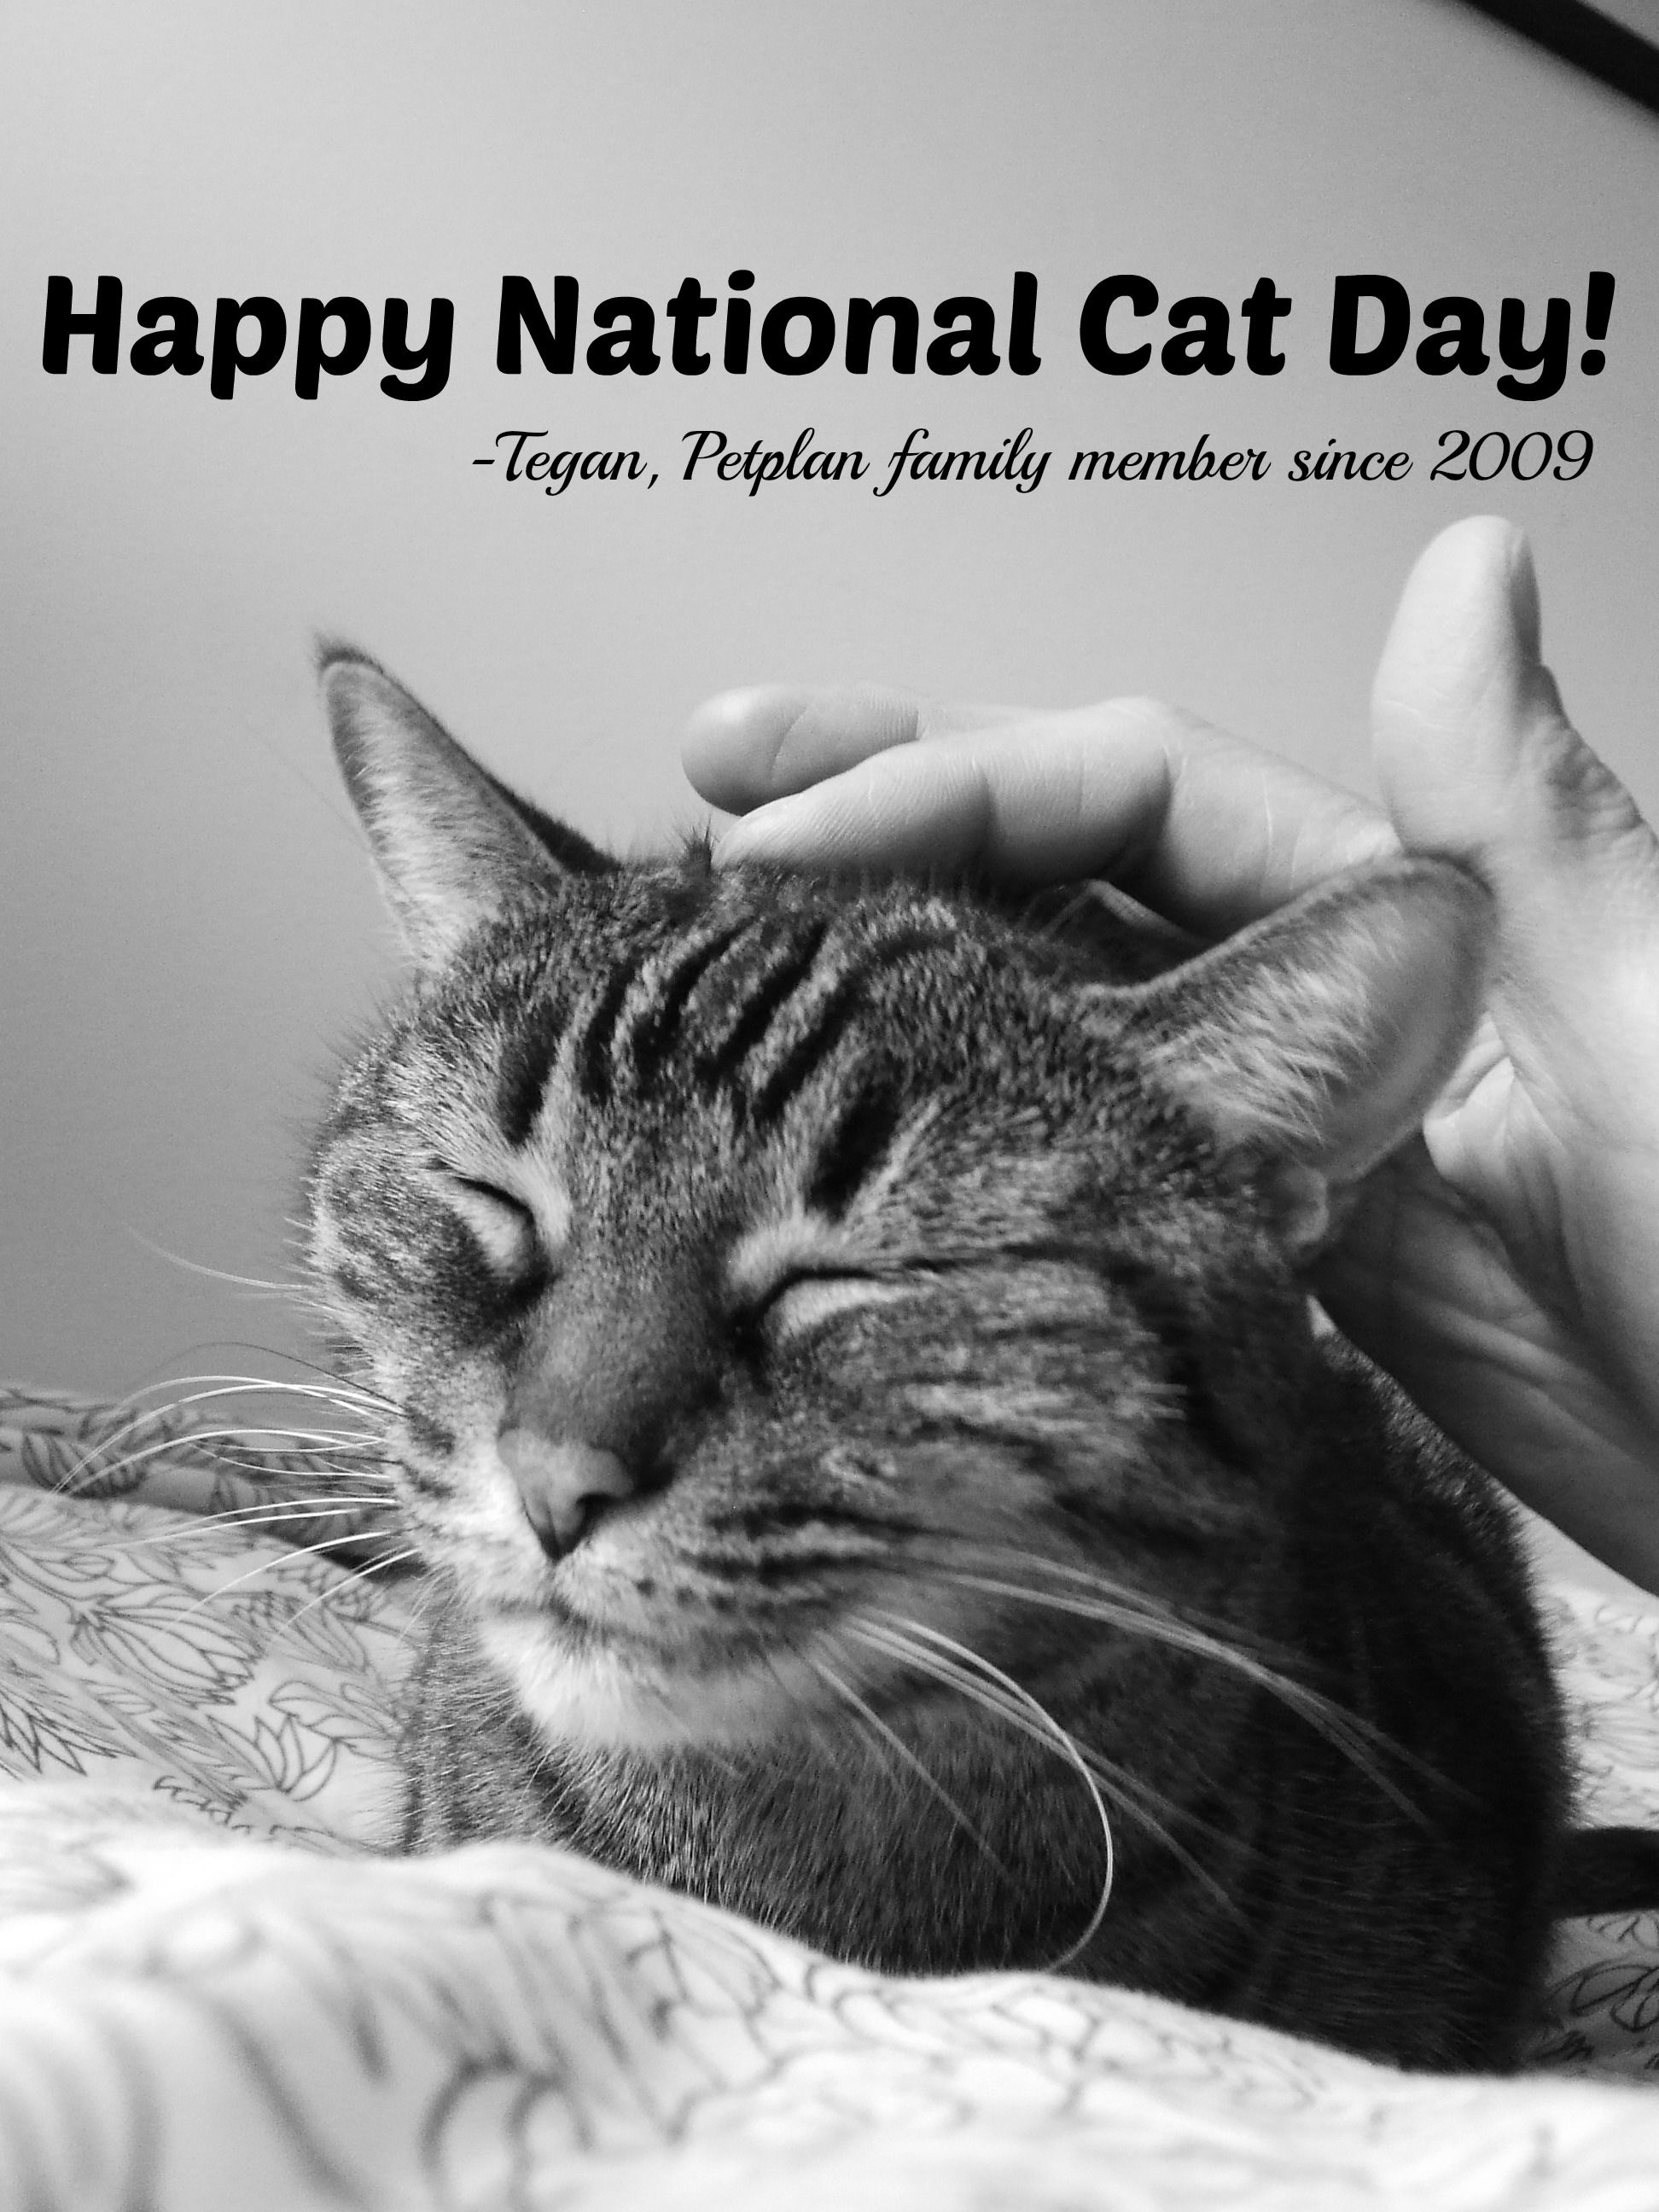 October 29 Is National Cat Day When It Comes To Unconditional Love Our Cats Are Well The Cat S Meow Doesn T Love Like National Cat Day Cat Insurance Cats